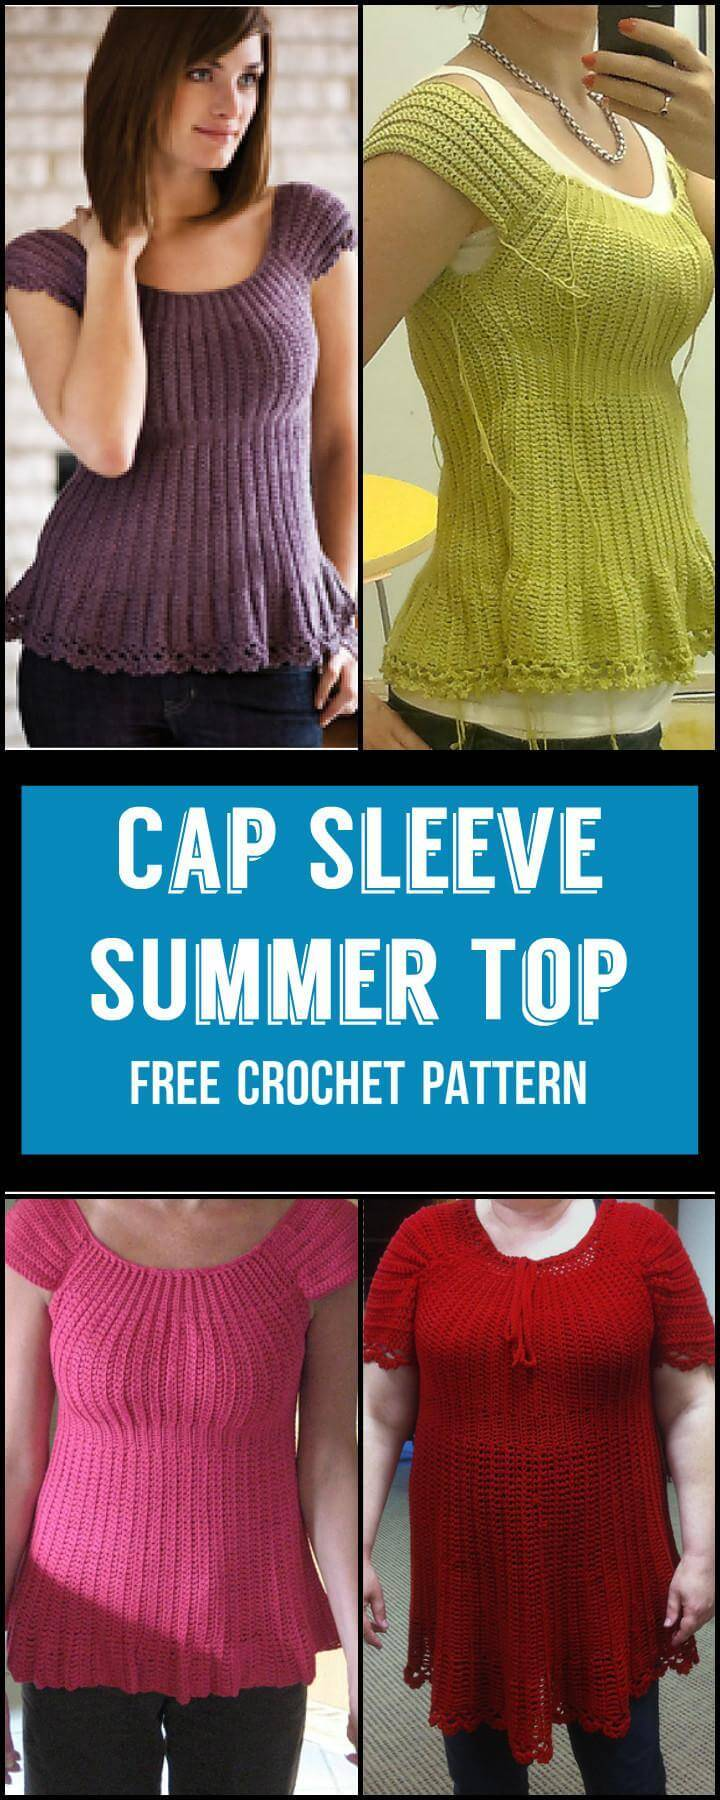 Cap Sleeve SUmmer Top Free Crochet Pattern